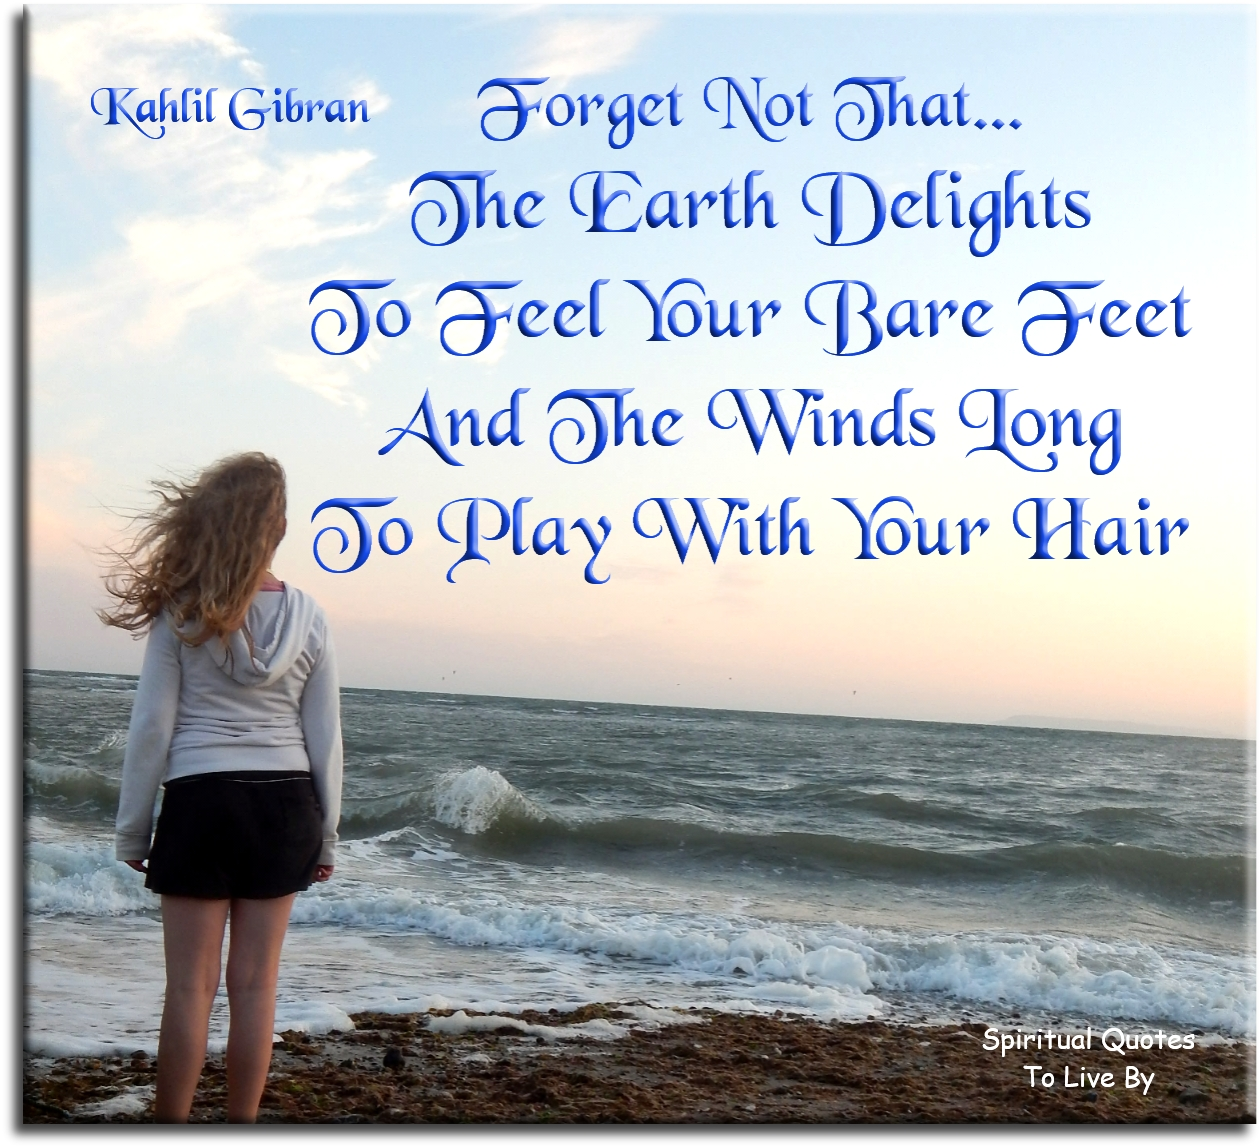 Forget not that the Earth delights to feel your bare feet and the winds long to play with your hair - Kahlil Gibran - Spiritual Quotes To Live By